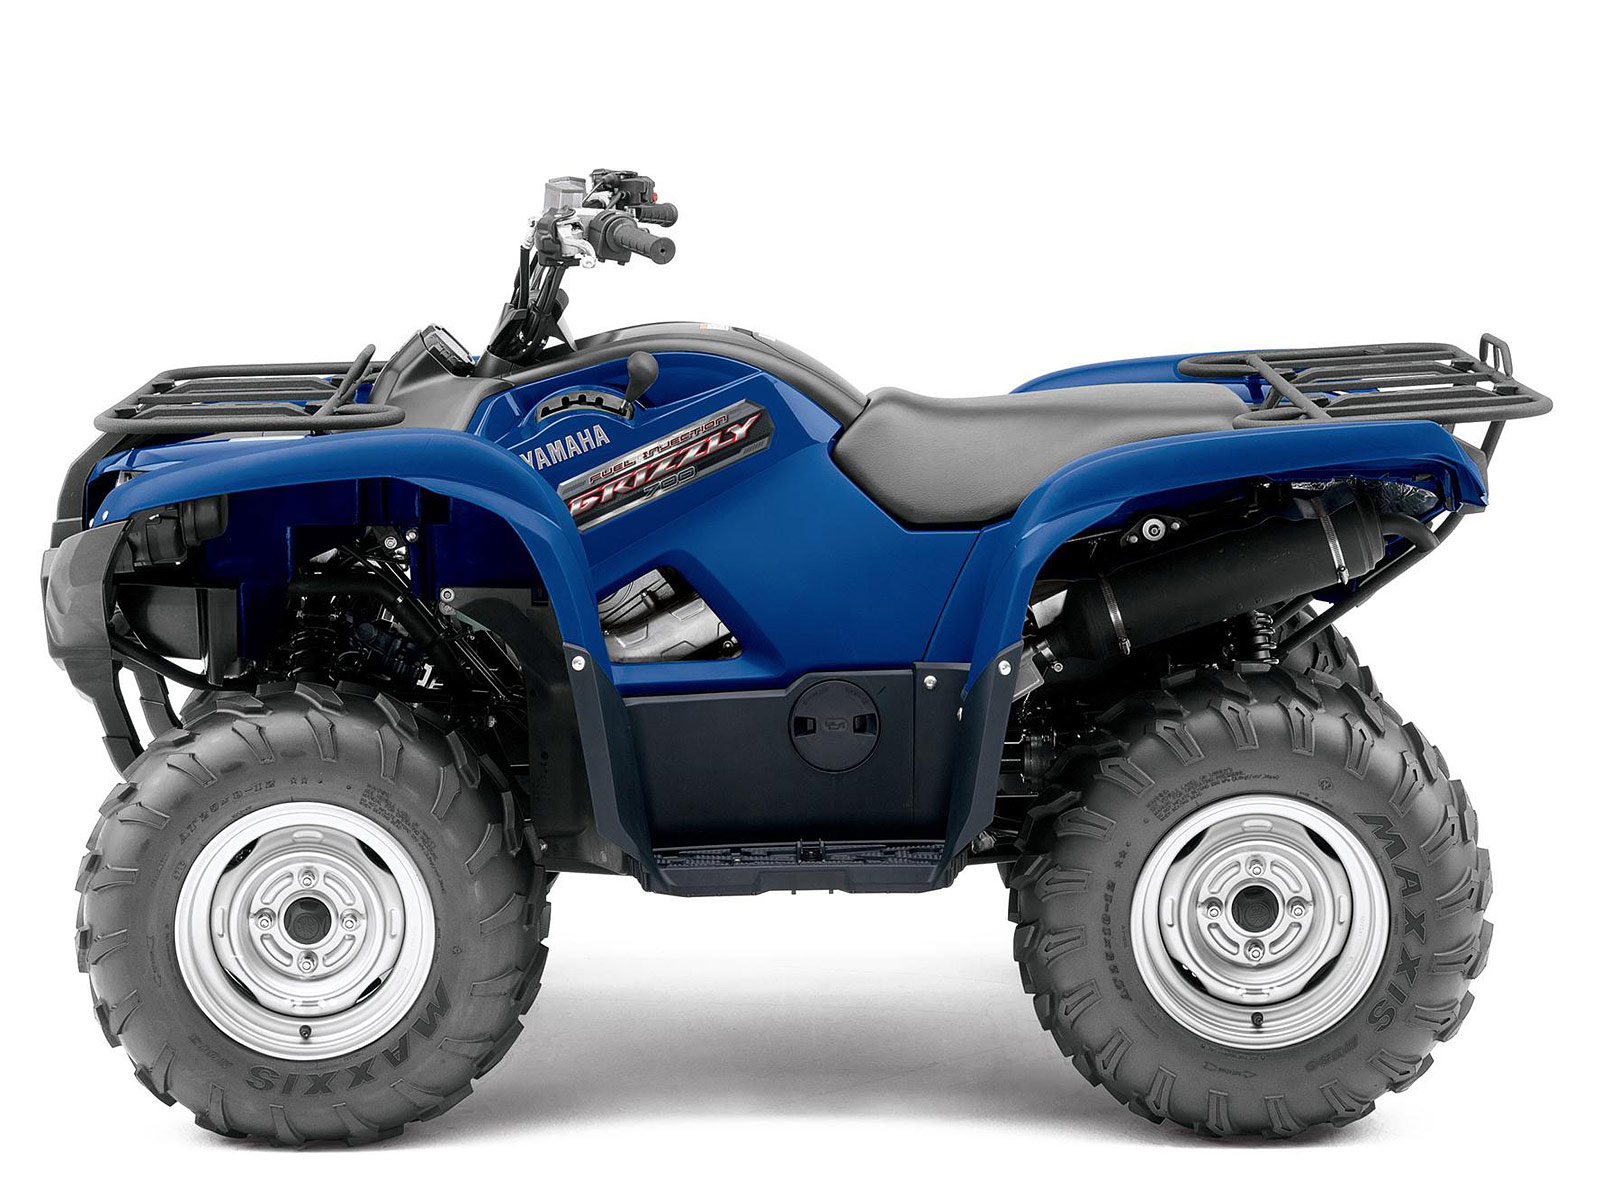 08 Yamaha Rhino 700 Efi Wiring Diagram Free Picture Just Another 450 Library Rh 68 Budoshop4you De